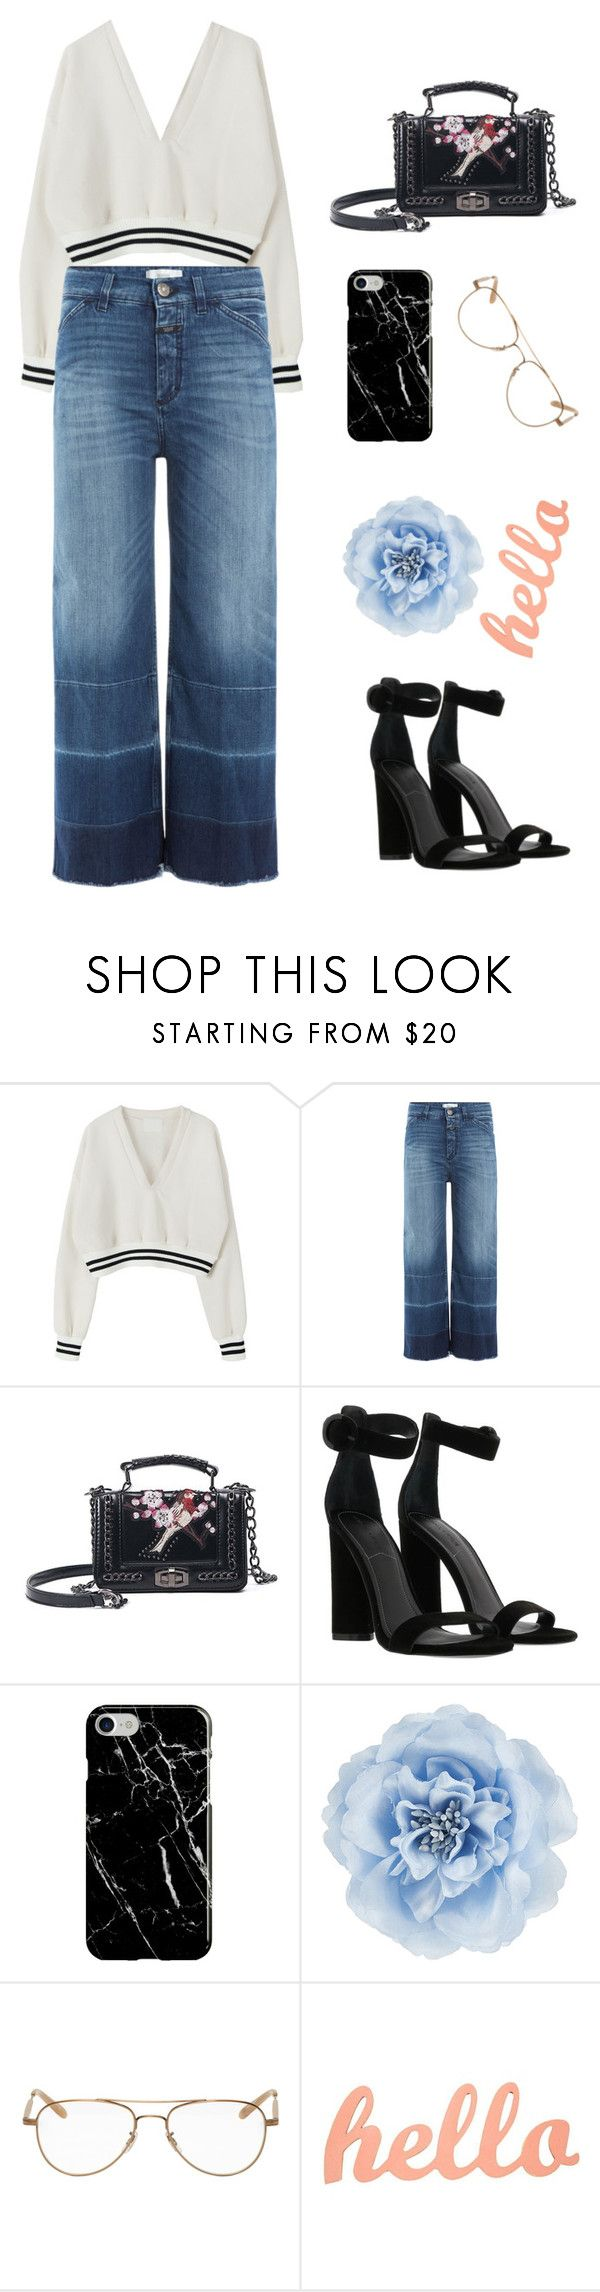 """""""College Student Style"""" by jz20 ❤ liked on Polyvore featuring Closed, Kendall + Kylie, Recover, Monsoon and Garrett Leight"""